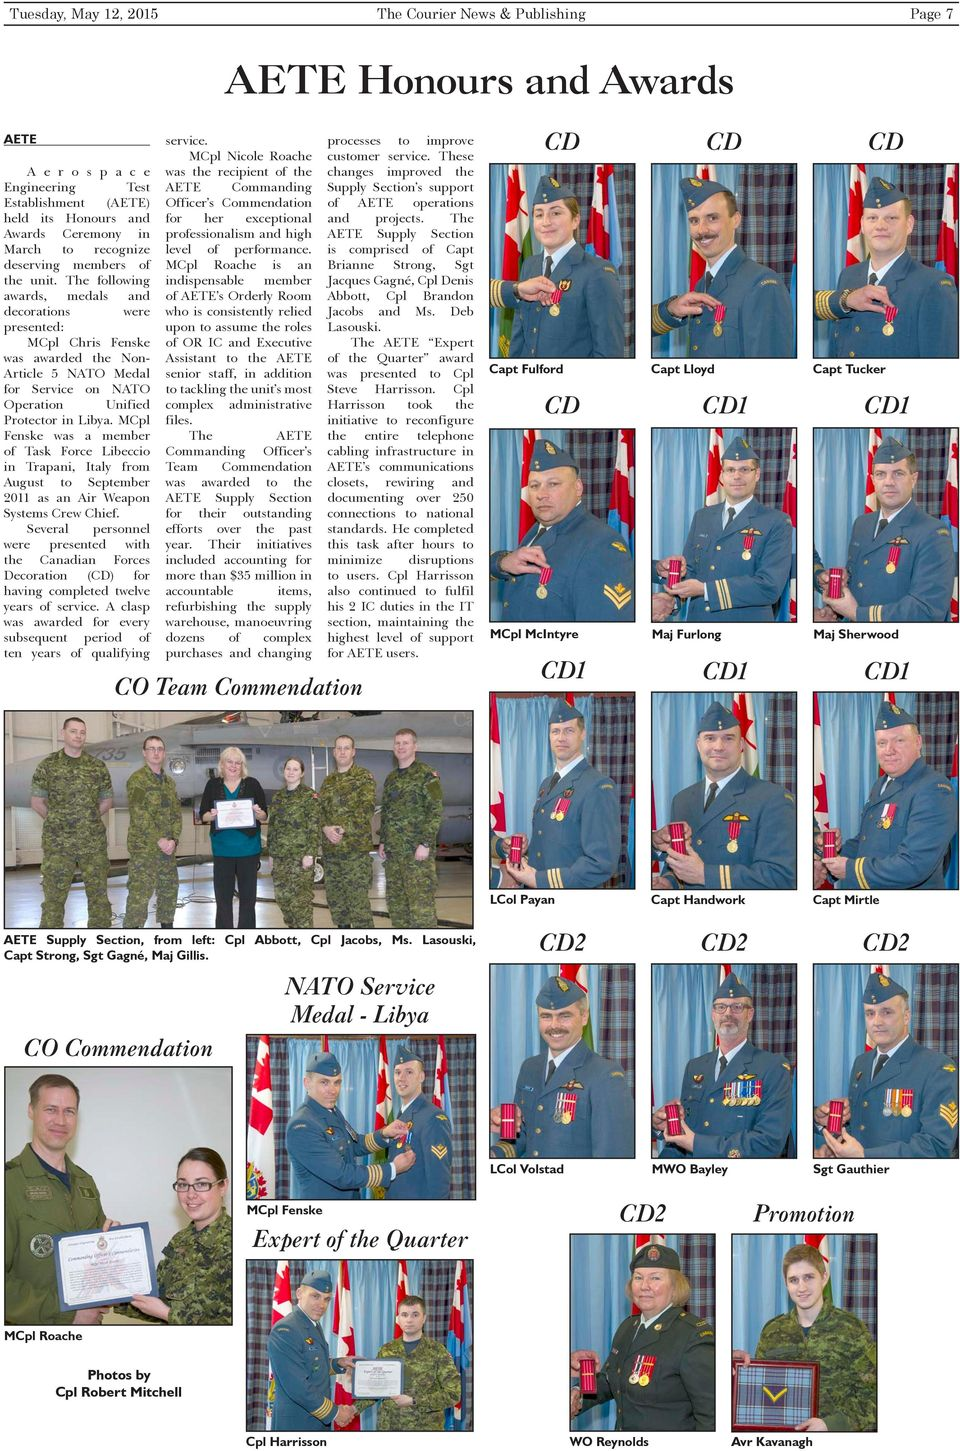 The following awards, medals and decorations were presented: MCpl Chris Fenske was awarded the Non- Article 5 NATO Medal for Service on NATO Operation Unified Protector in Libya.